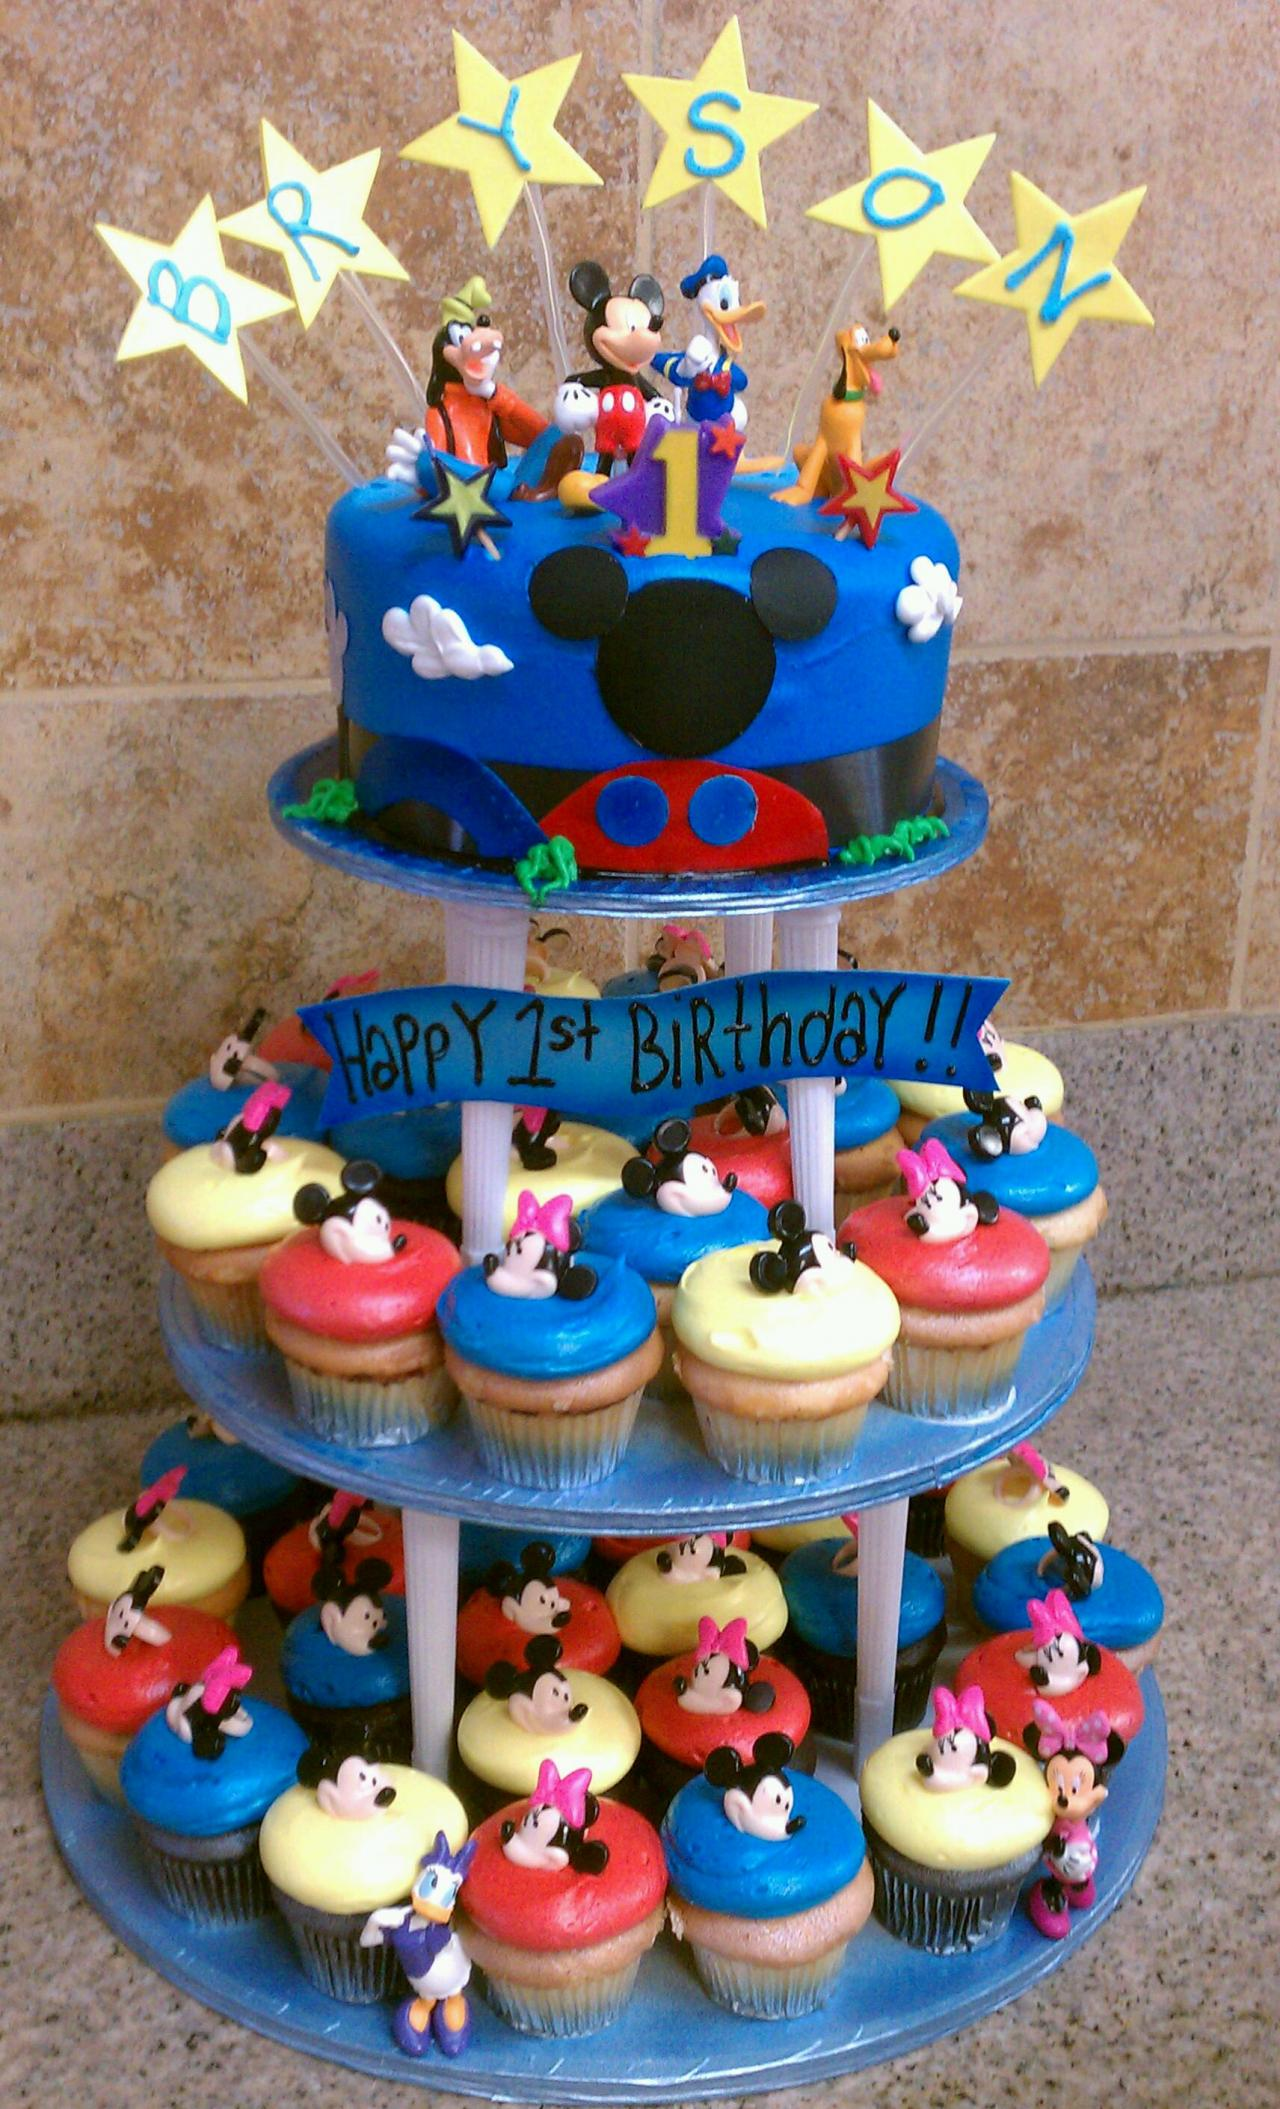 Magnificent Mickey Mouse Cake Decoration Ideas Little Birthday Cakes Funny Birthday Cards Online Inifofree Goldxyz